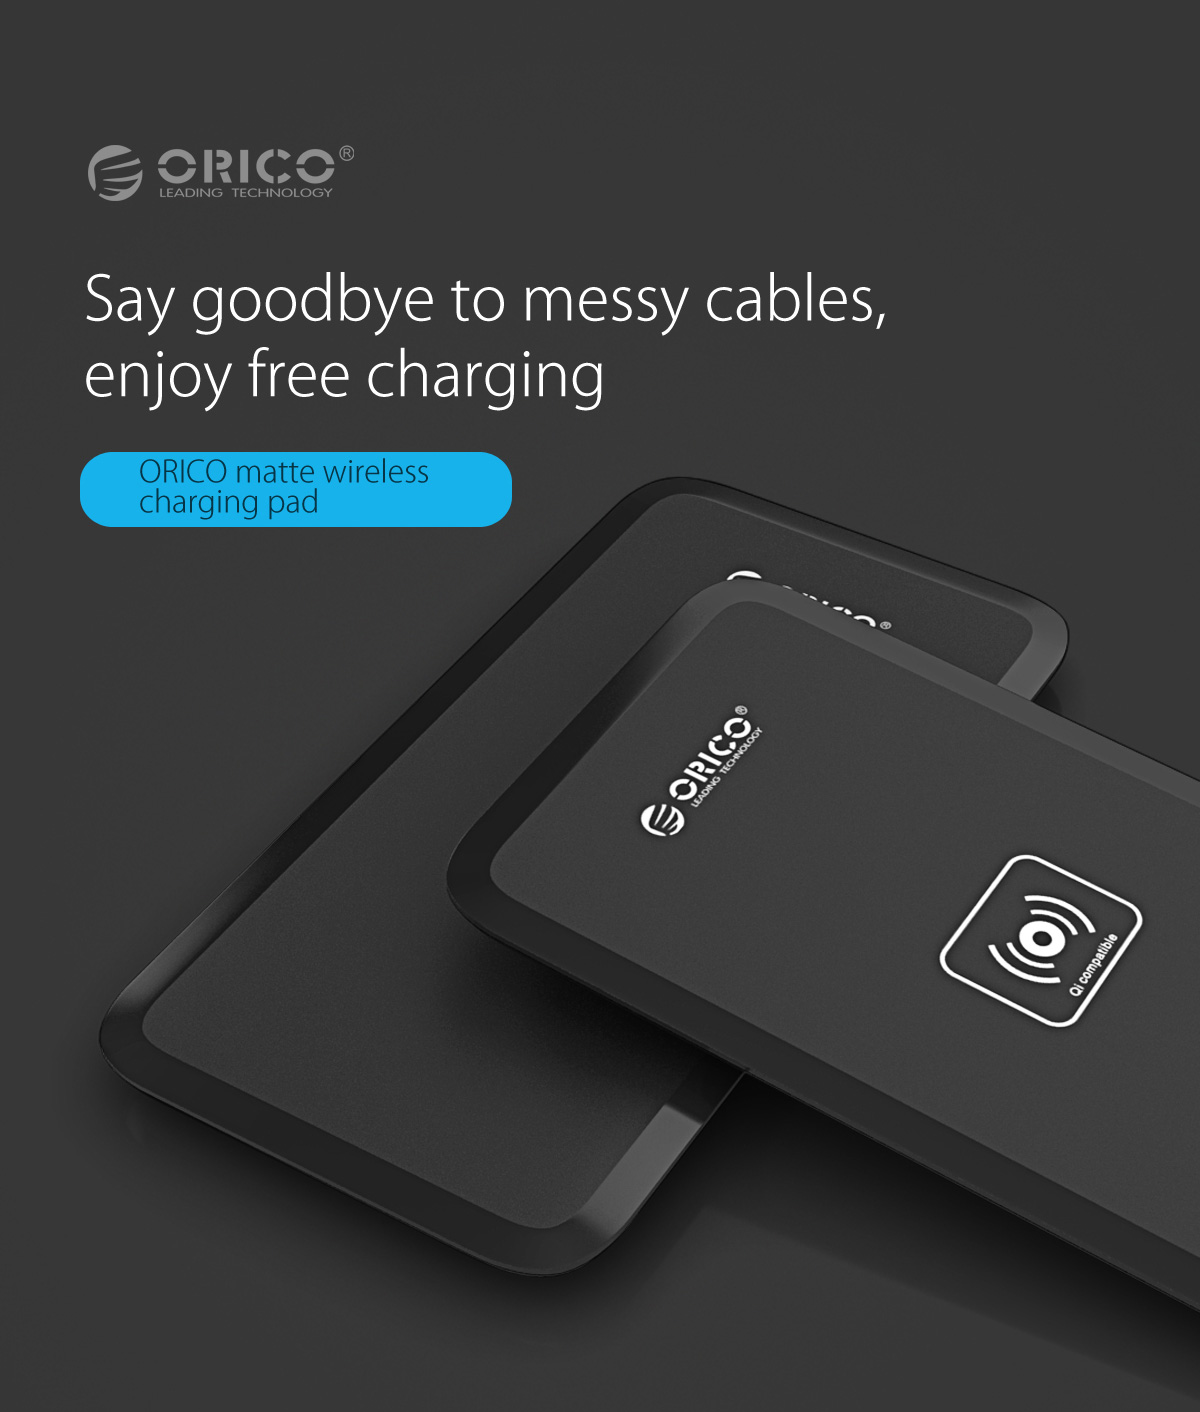 orico wireless charger, say goodbye to messy table